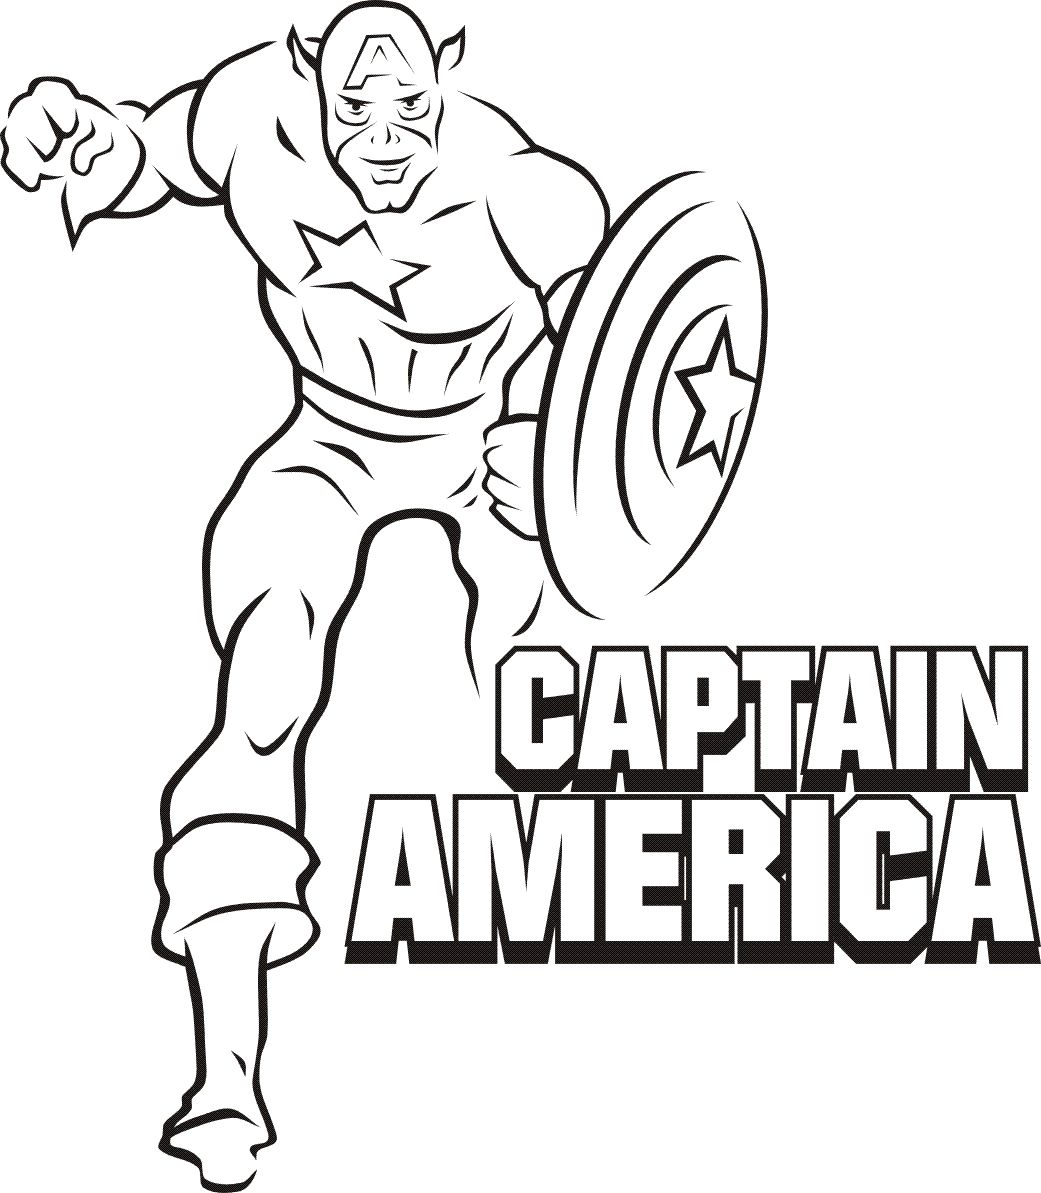 The Best Of Captain America Coloring Pages Superhero Coloring Superhero Coloring Pages Captain America Coloring Pages